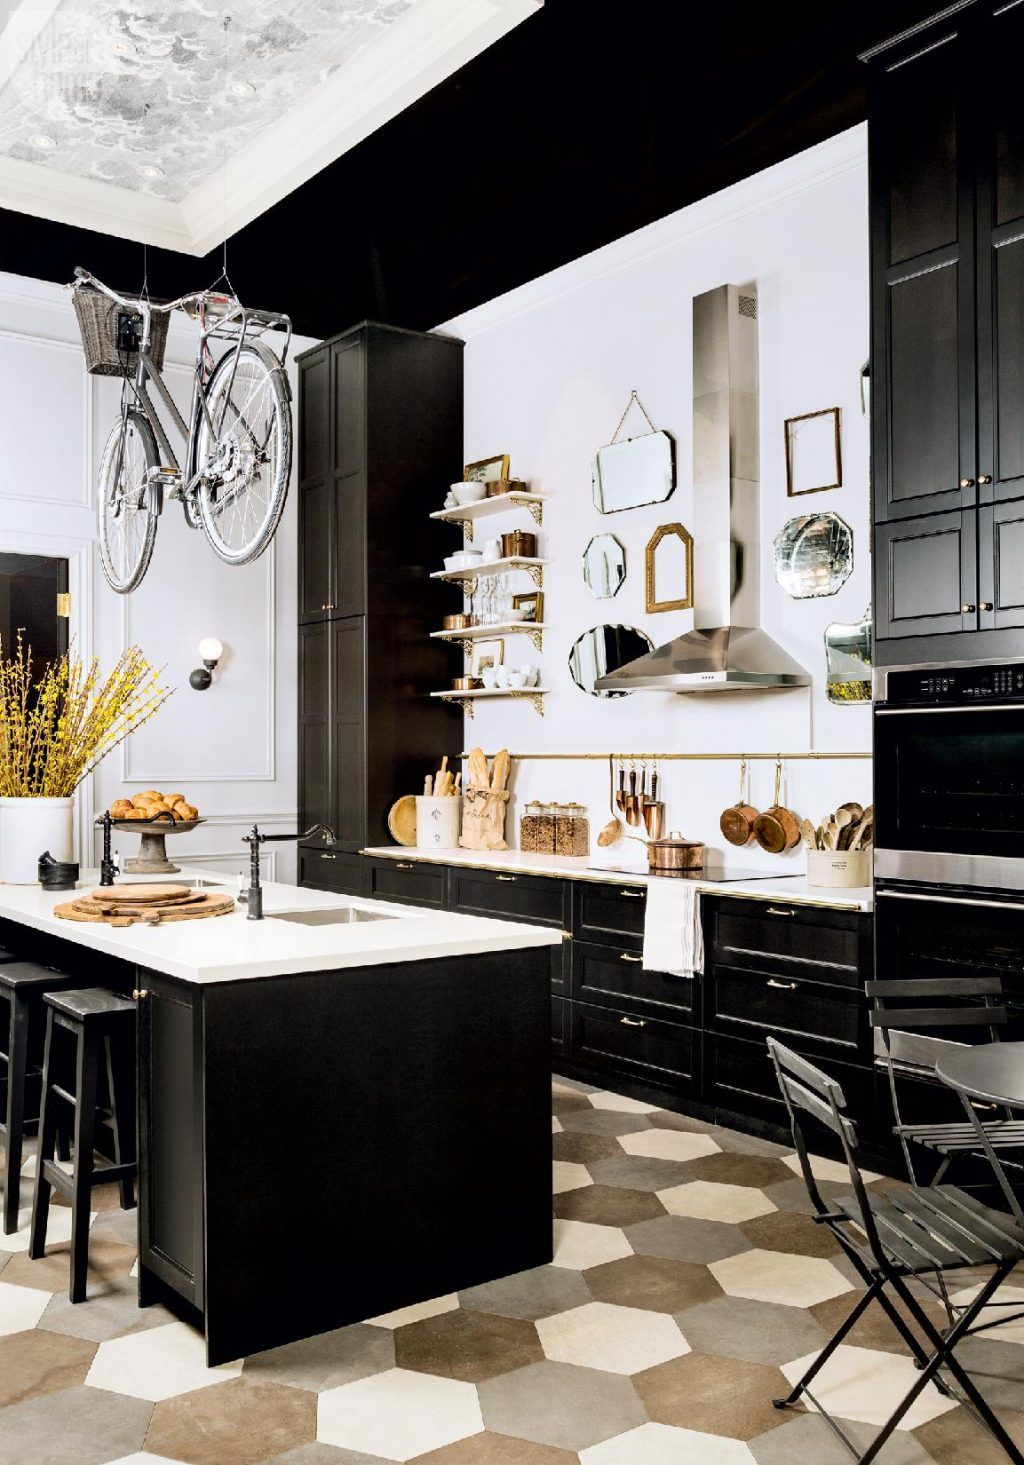 Paris Bistro Kitchen Style Black White Kitchen White Kitchen Remodeling Kitchen Remodel Small Kitchen Style